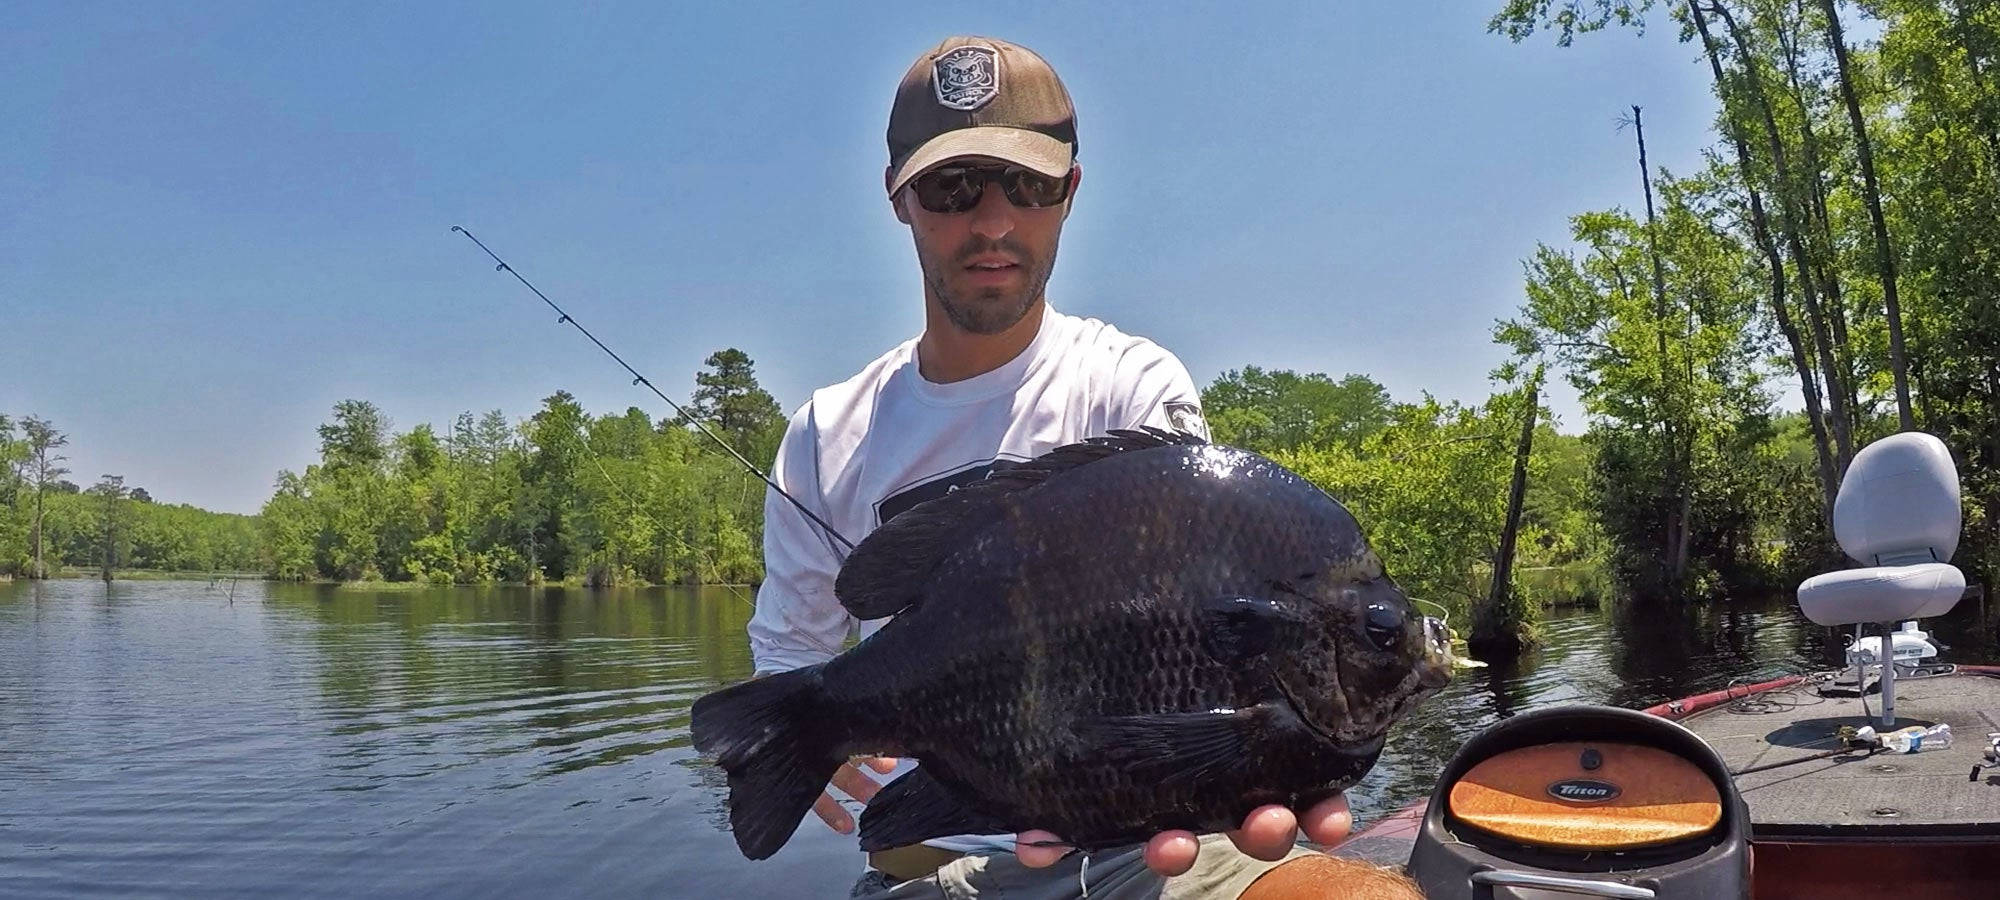 10 Tips for Catching Giant Bluegills This Summer